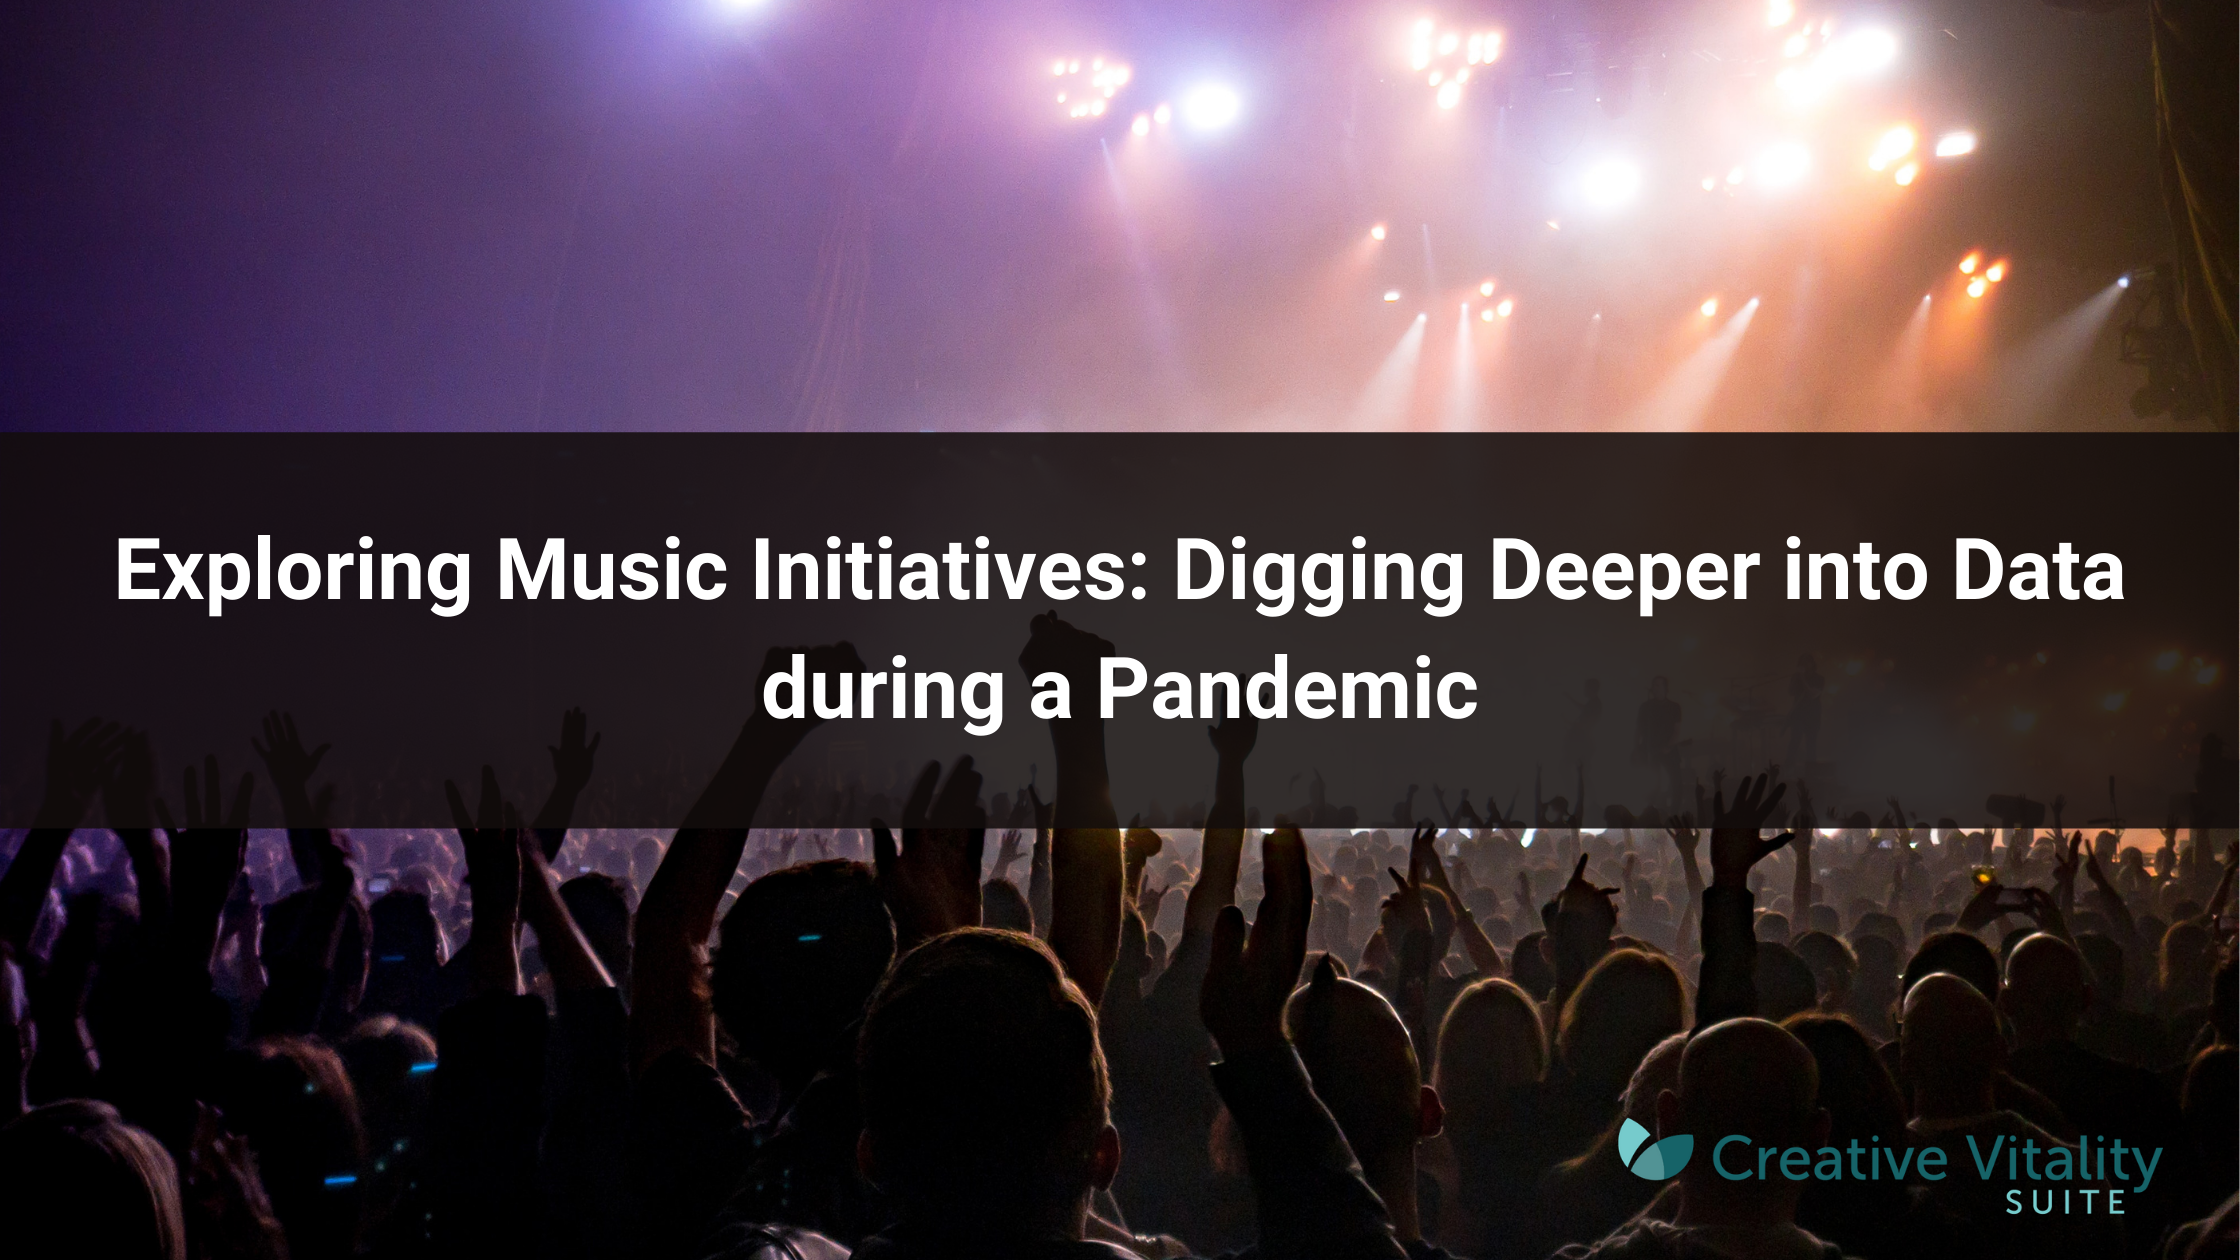 Exploring Music Initiatives: Digging Deeper into Data during a Pandemic featured image with a crowd in the background